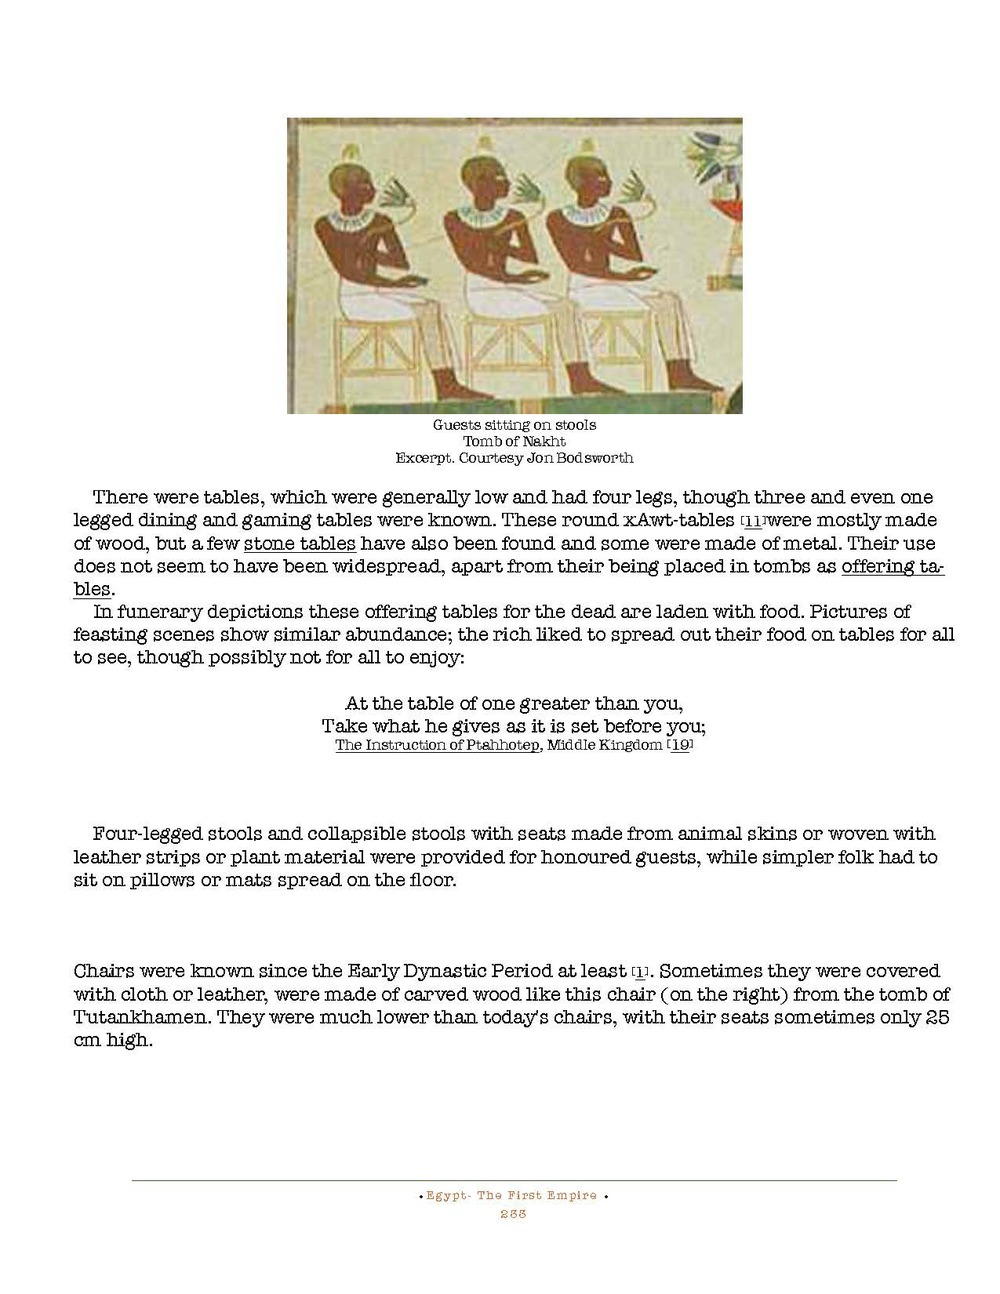 HOCE- Egypt  (First Empire) Notes_Page_233.jpg